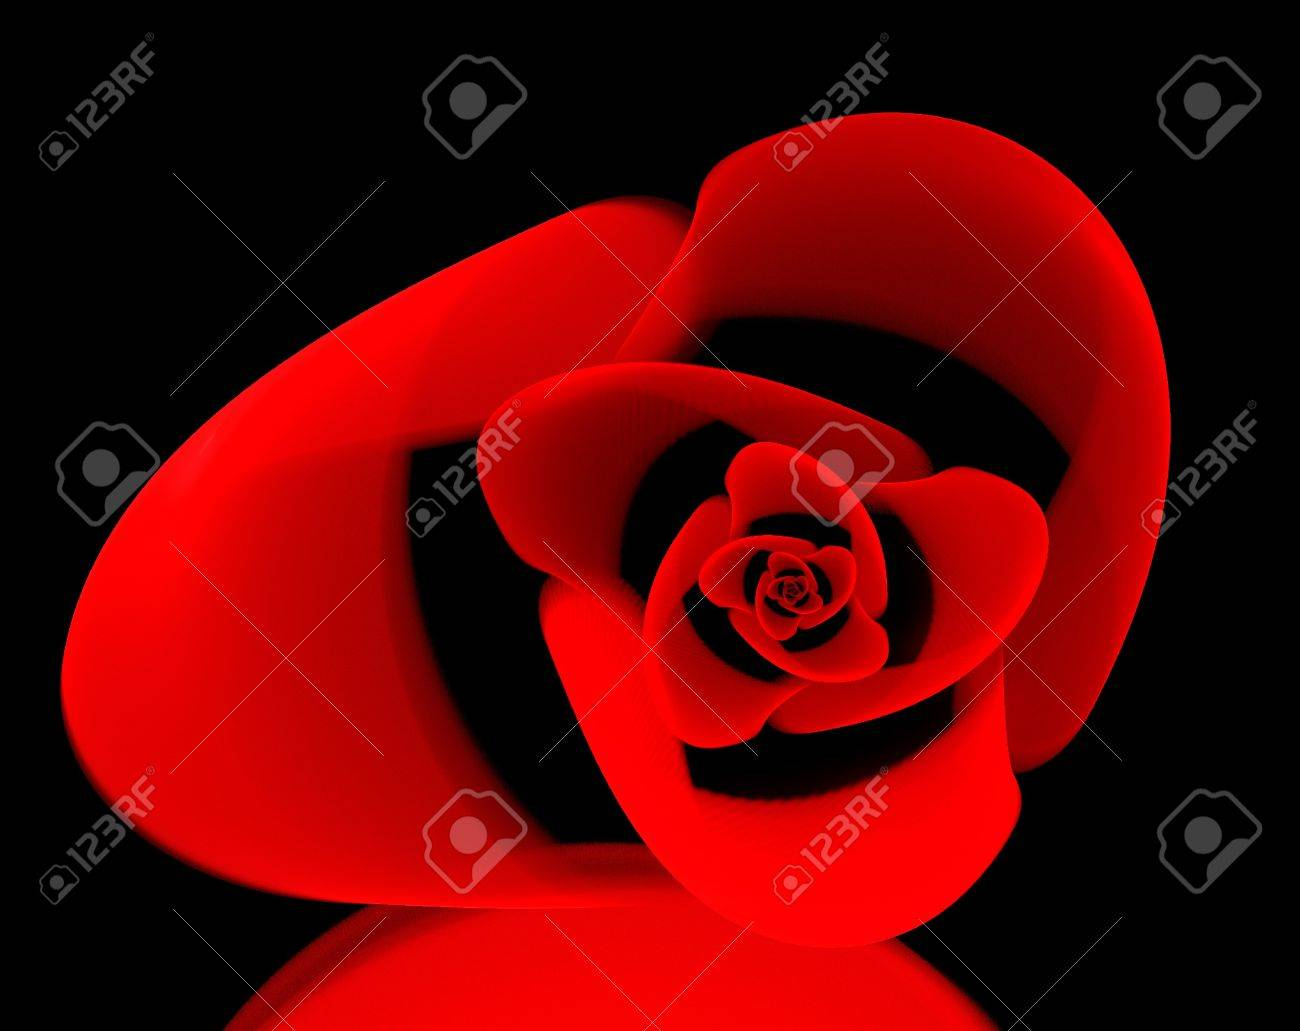 Rose Shape Fractal Red Colorful Abstract Wallpaper Design Over A Black Background Stock Photo